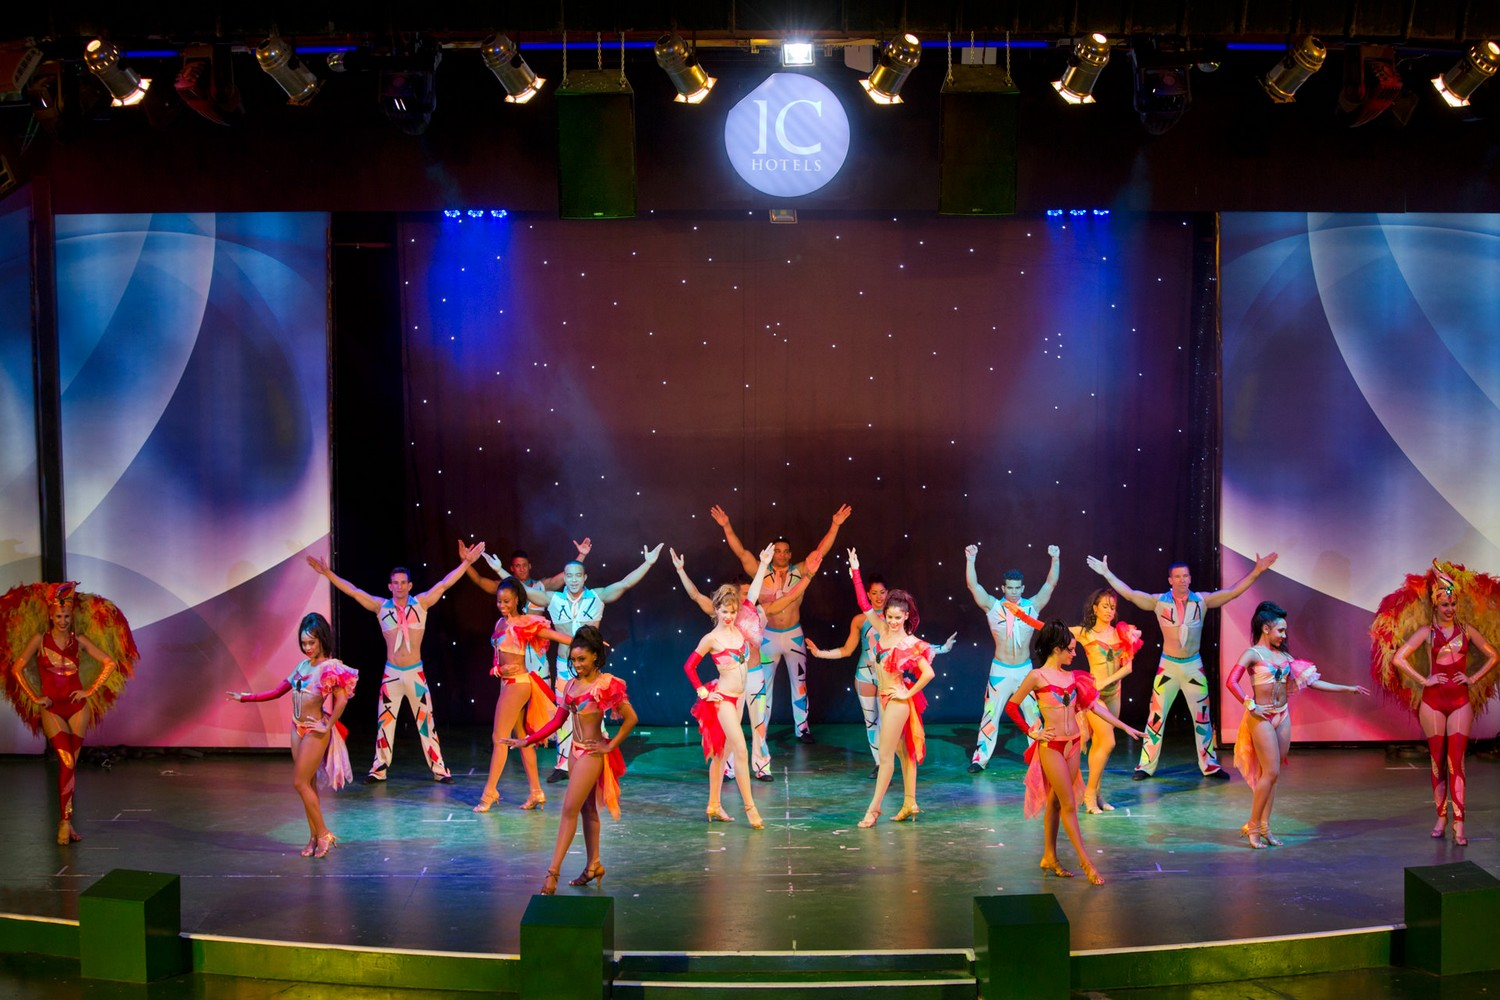 ic_hotels_green_palace_evening_show_26.jpg